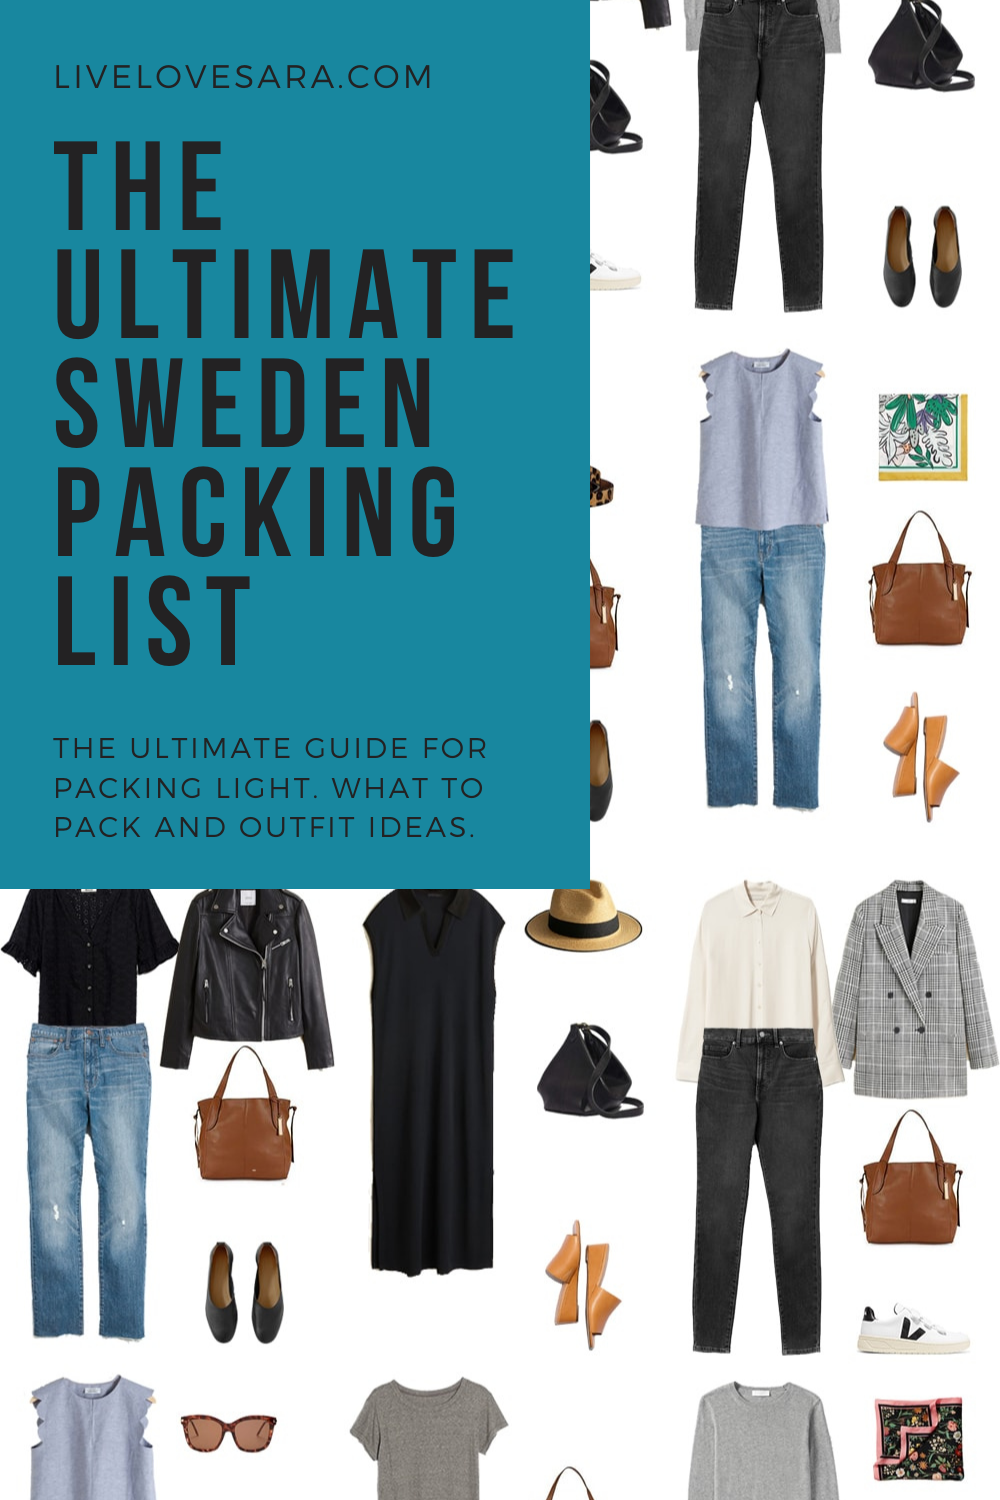 The Ultimate Sweden Packing List And Outfit Ideas In 2020 Summer Travel Wardrobe Clothes Capsule Wardrobe Summer Capsule Wardrobe